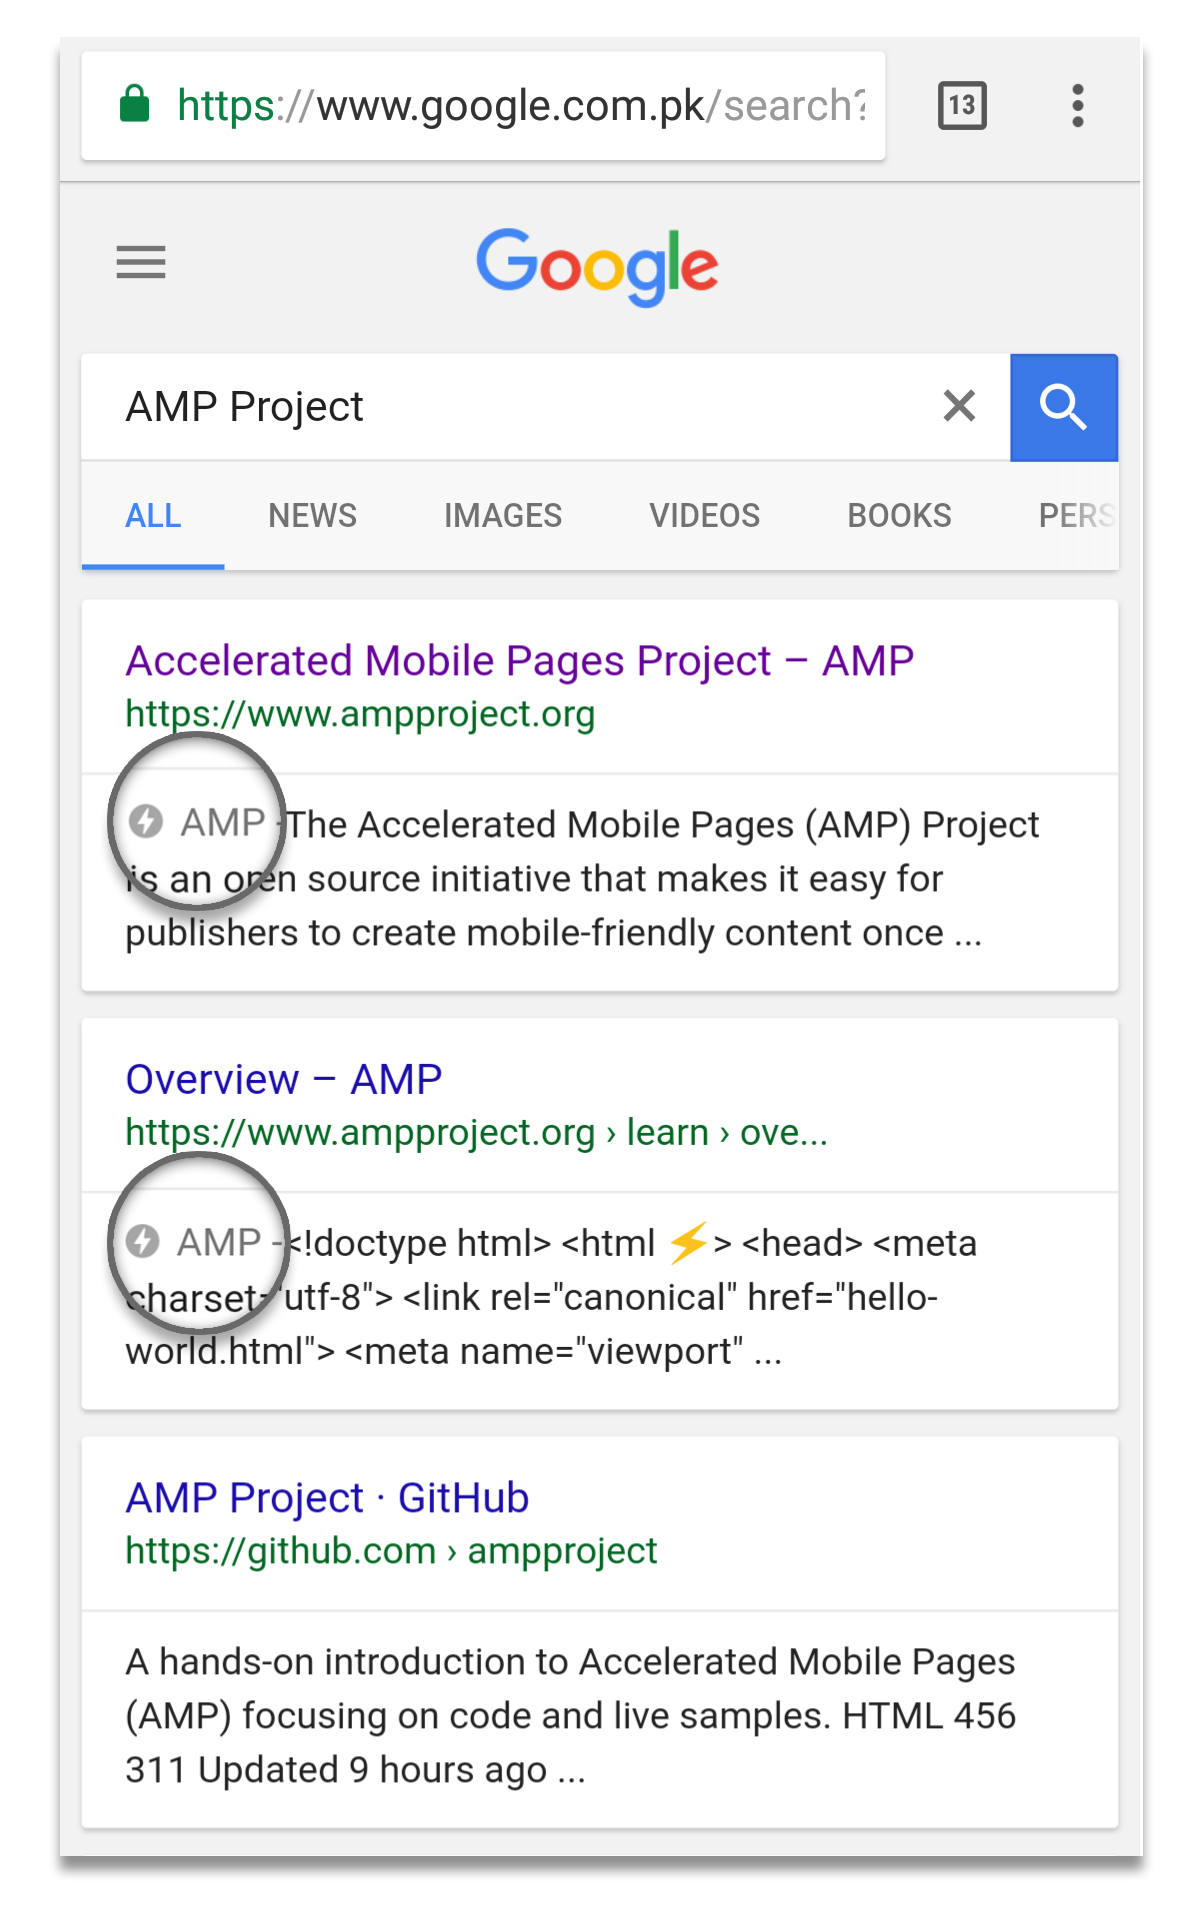 How to Invoke AMP (Accelerated Mobile Pages) in WordPress? 2 General